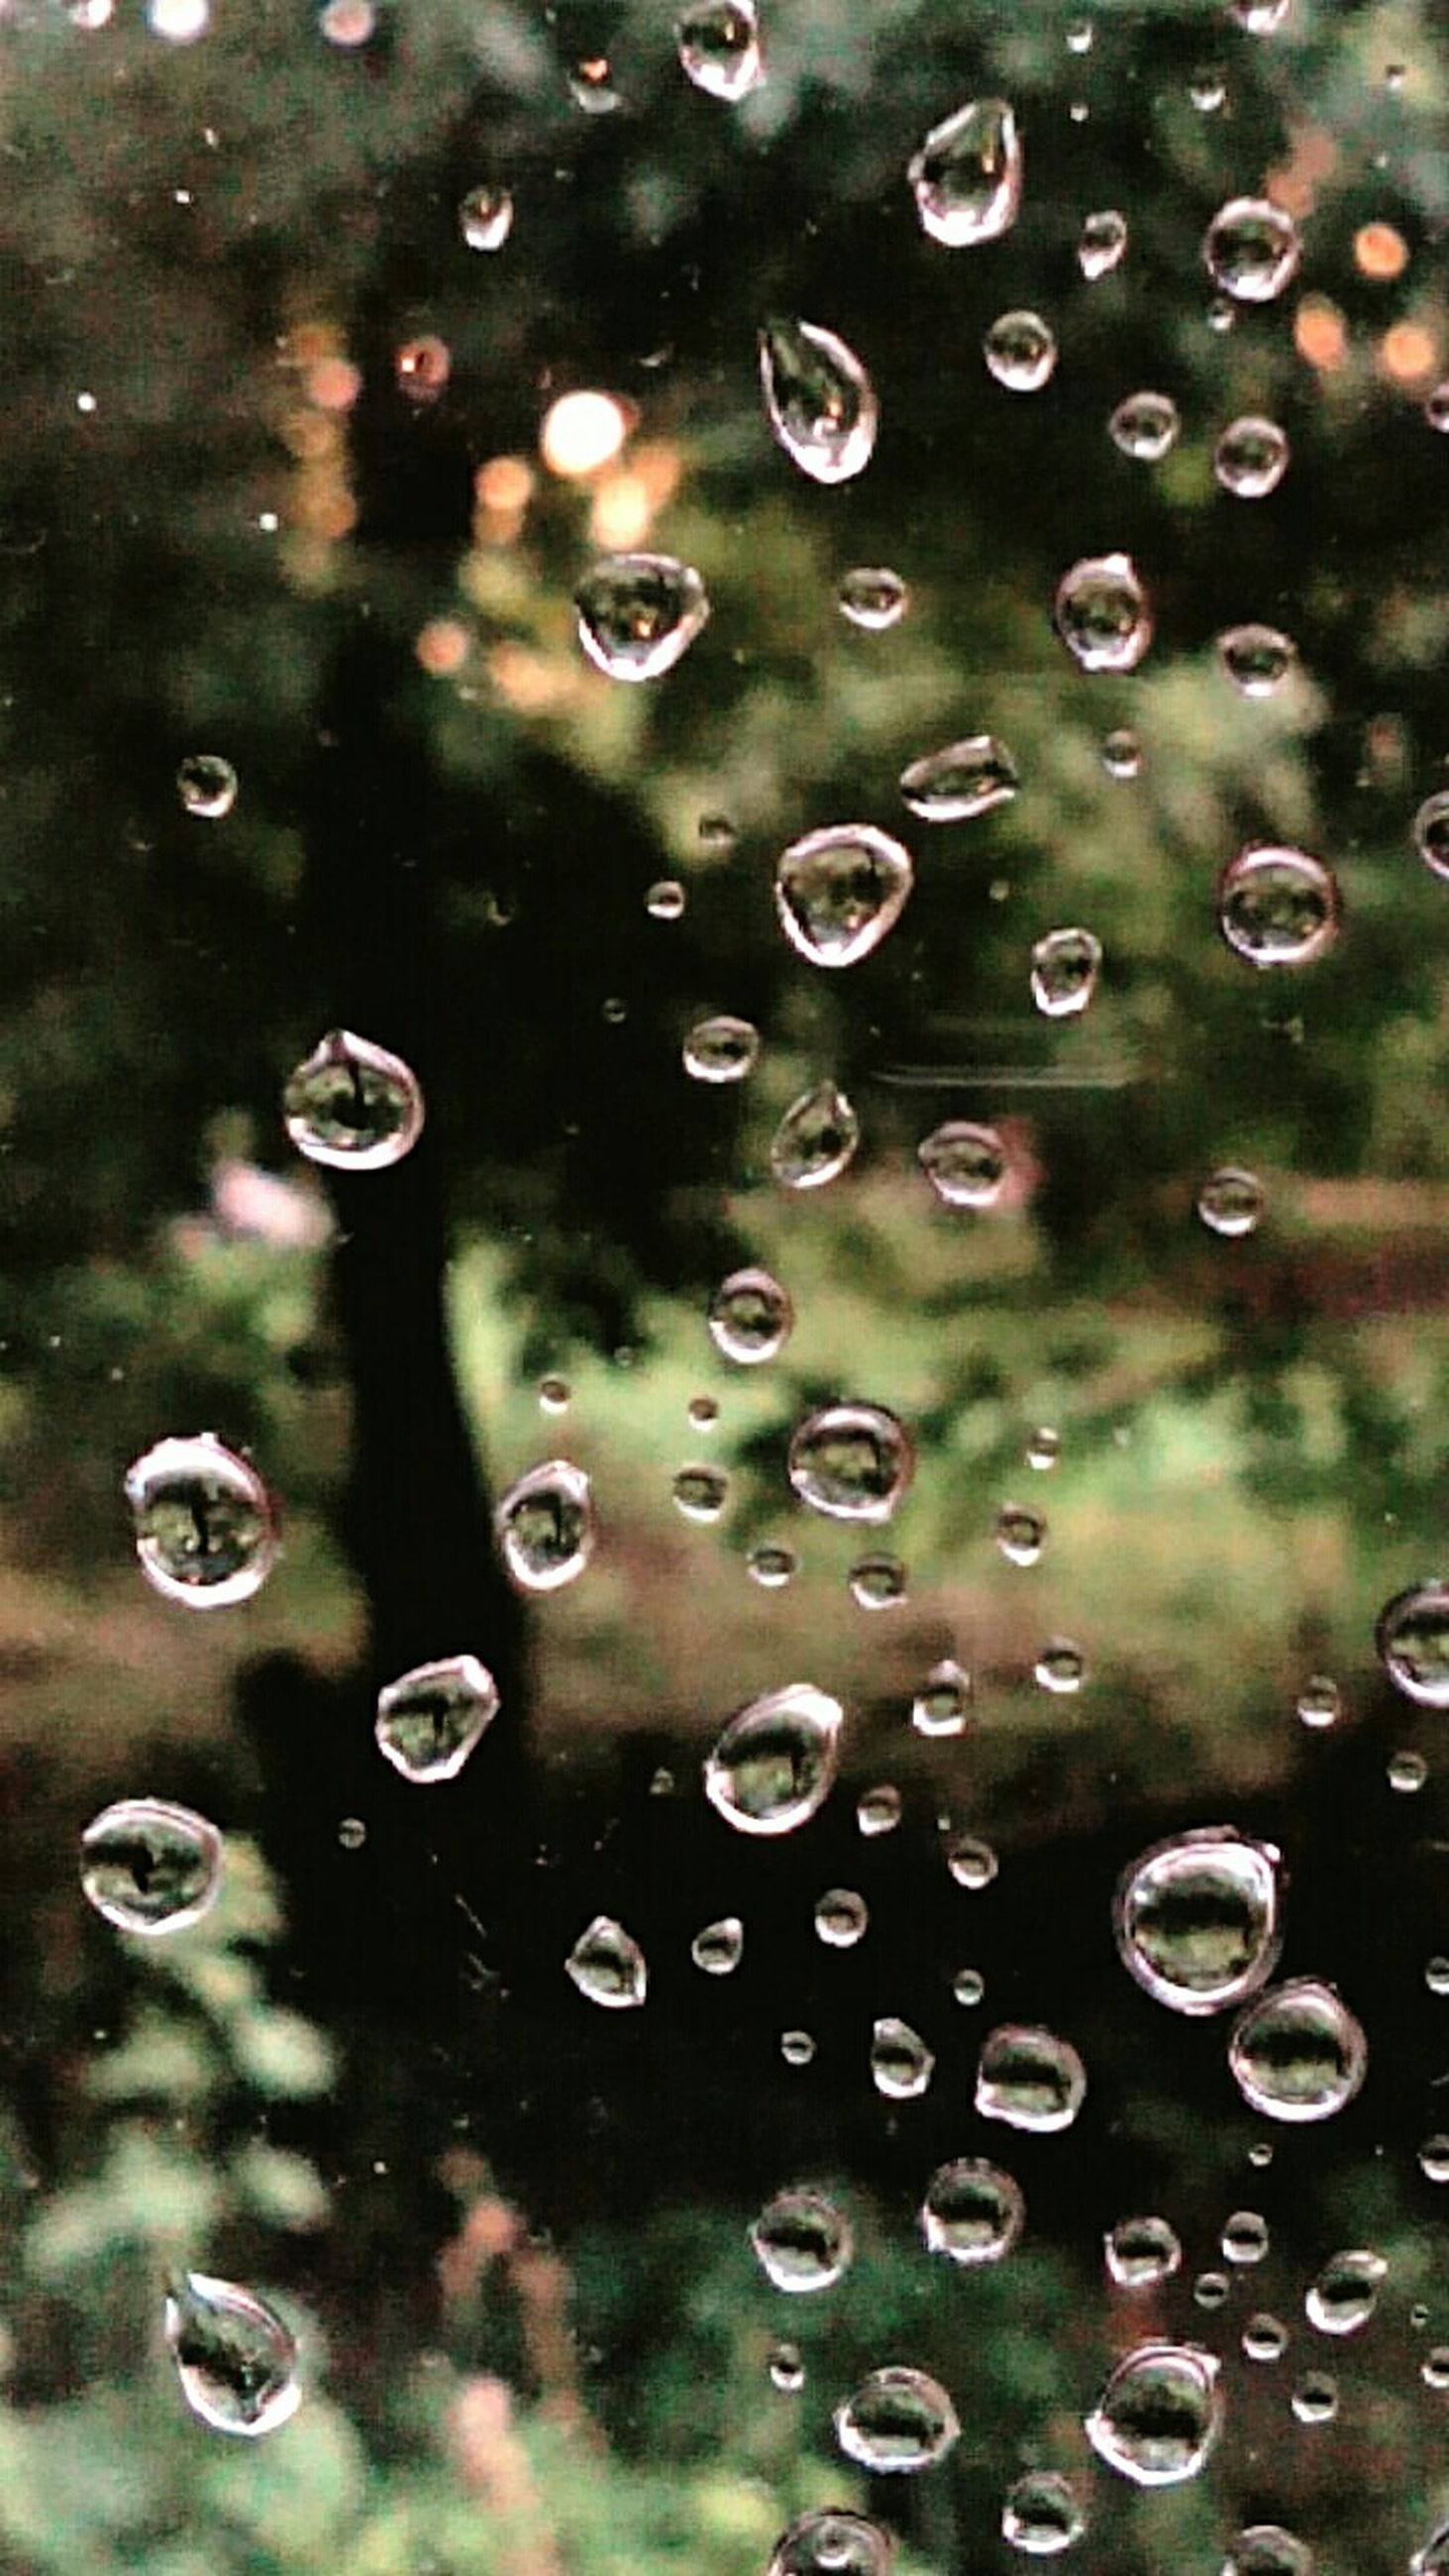 drop, water, wet, backgrounds, rain, full frame, raindrop, transparent, weather, close-up, nature, beauty in nature, water drop, purity, dew, sky, freshness, window, droplet, focus on foreground